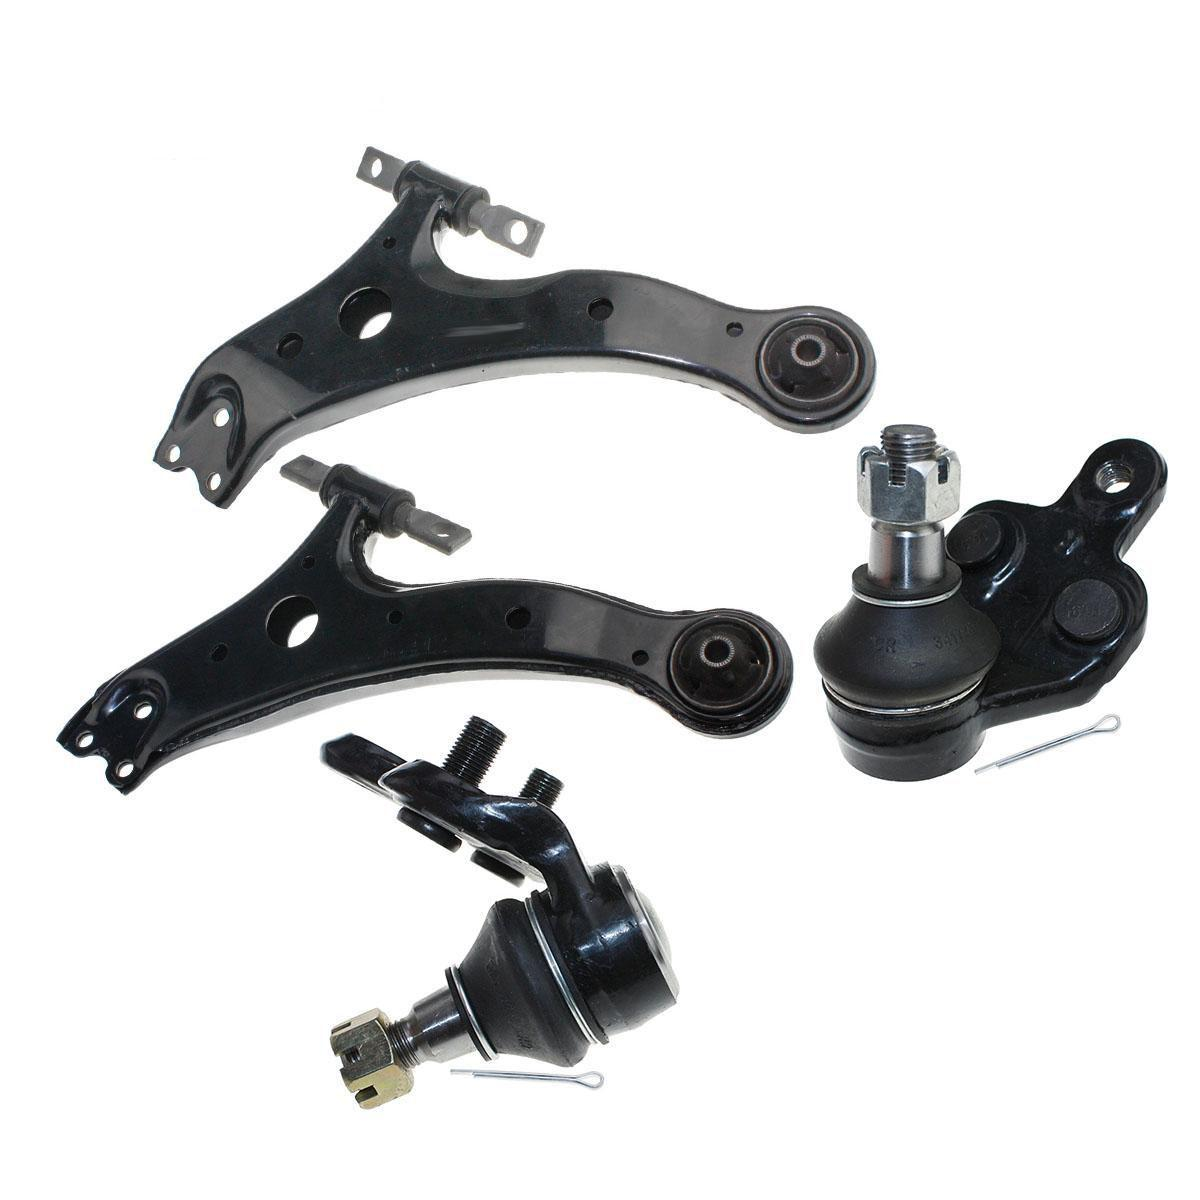 2001 Isuzu Rodeo Exterior: New Front Lower Complete Control Arm Suspension Kit For